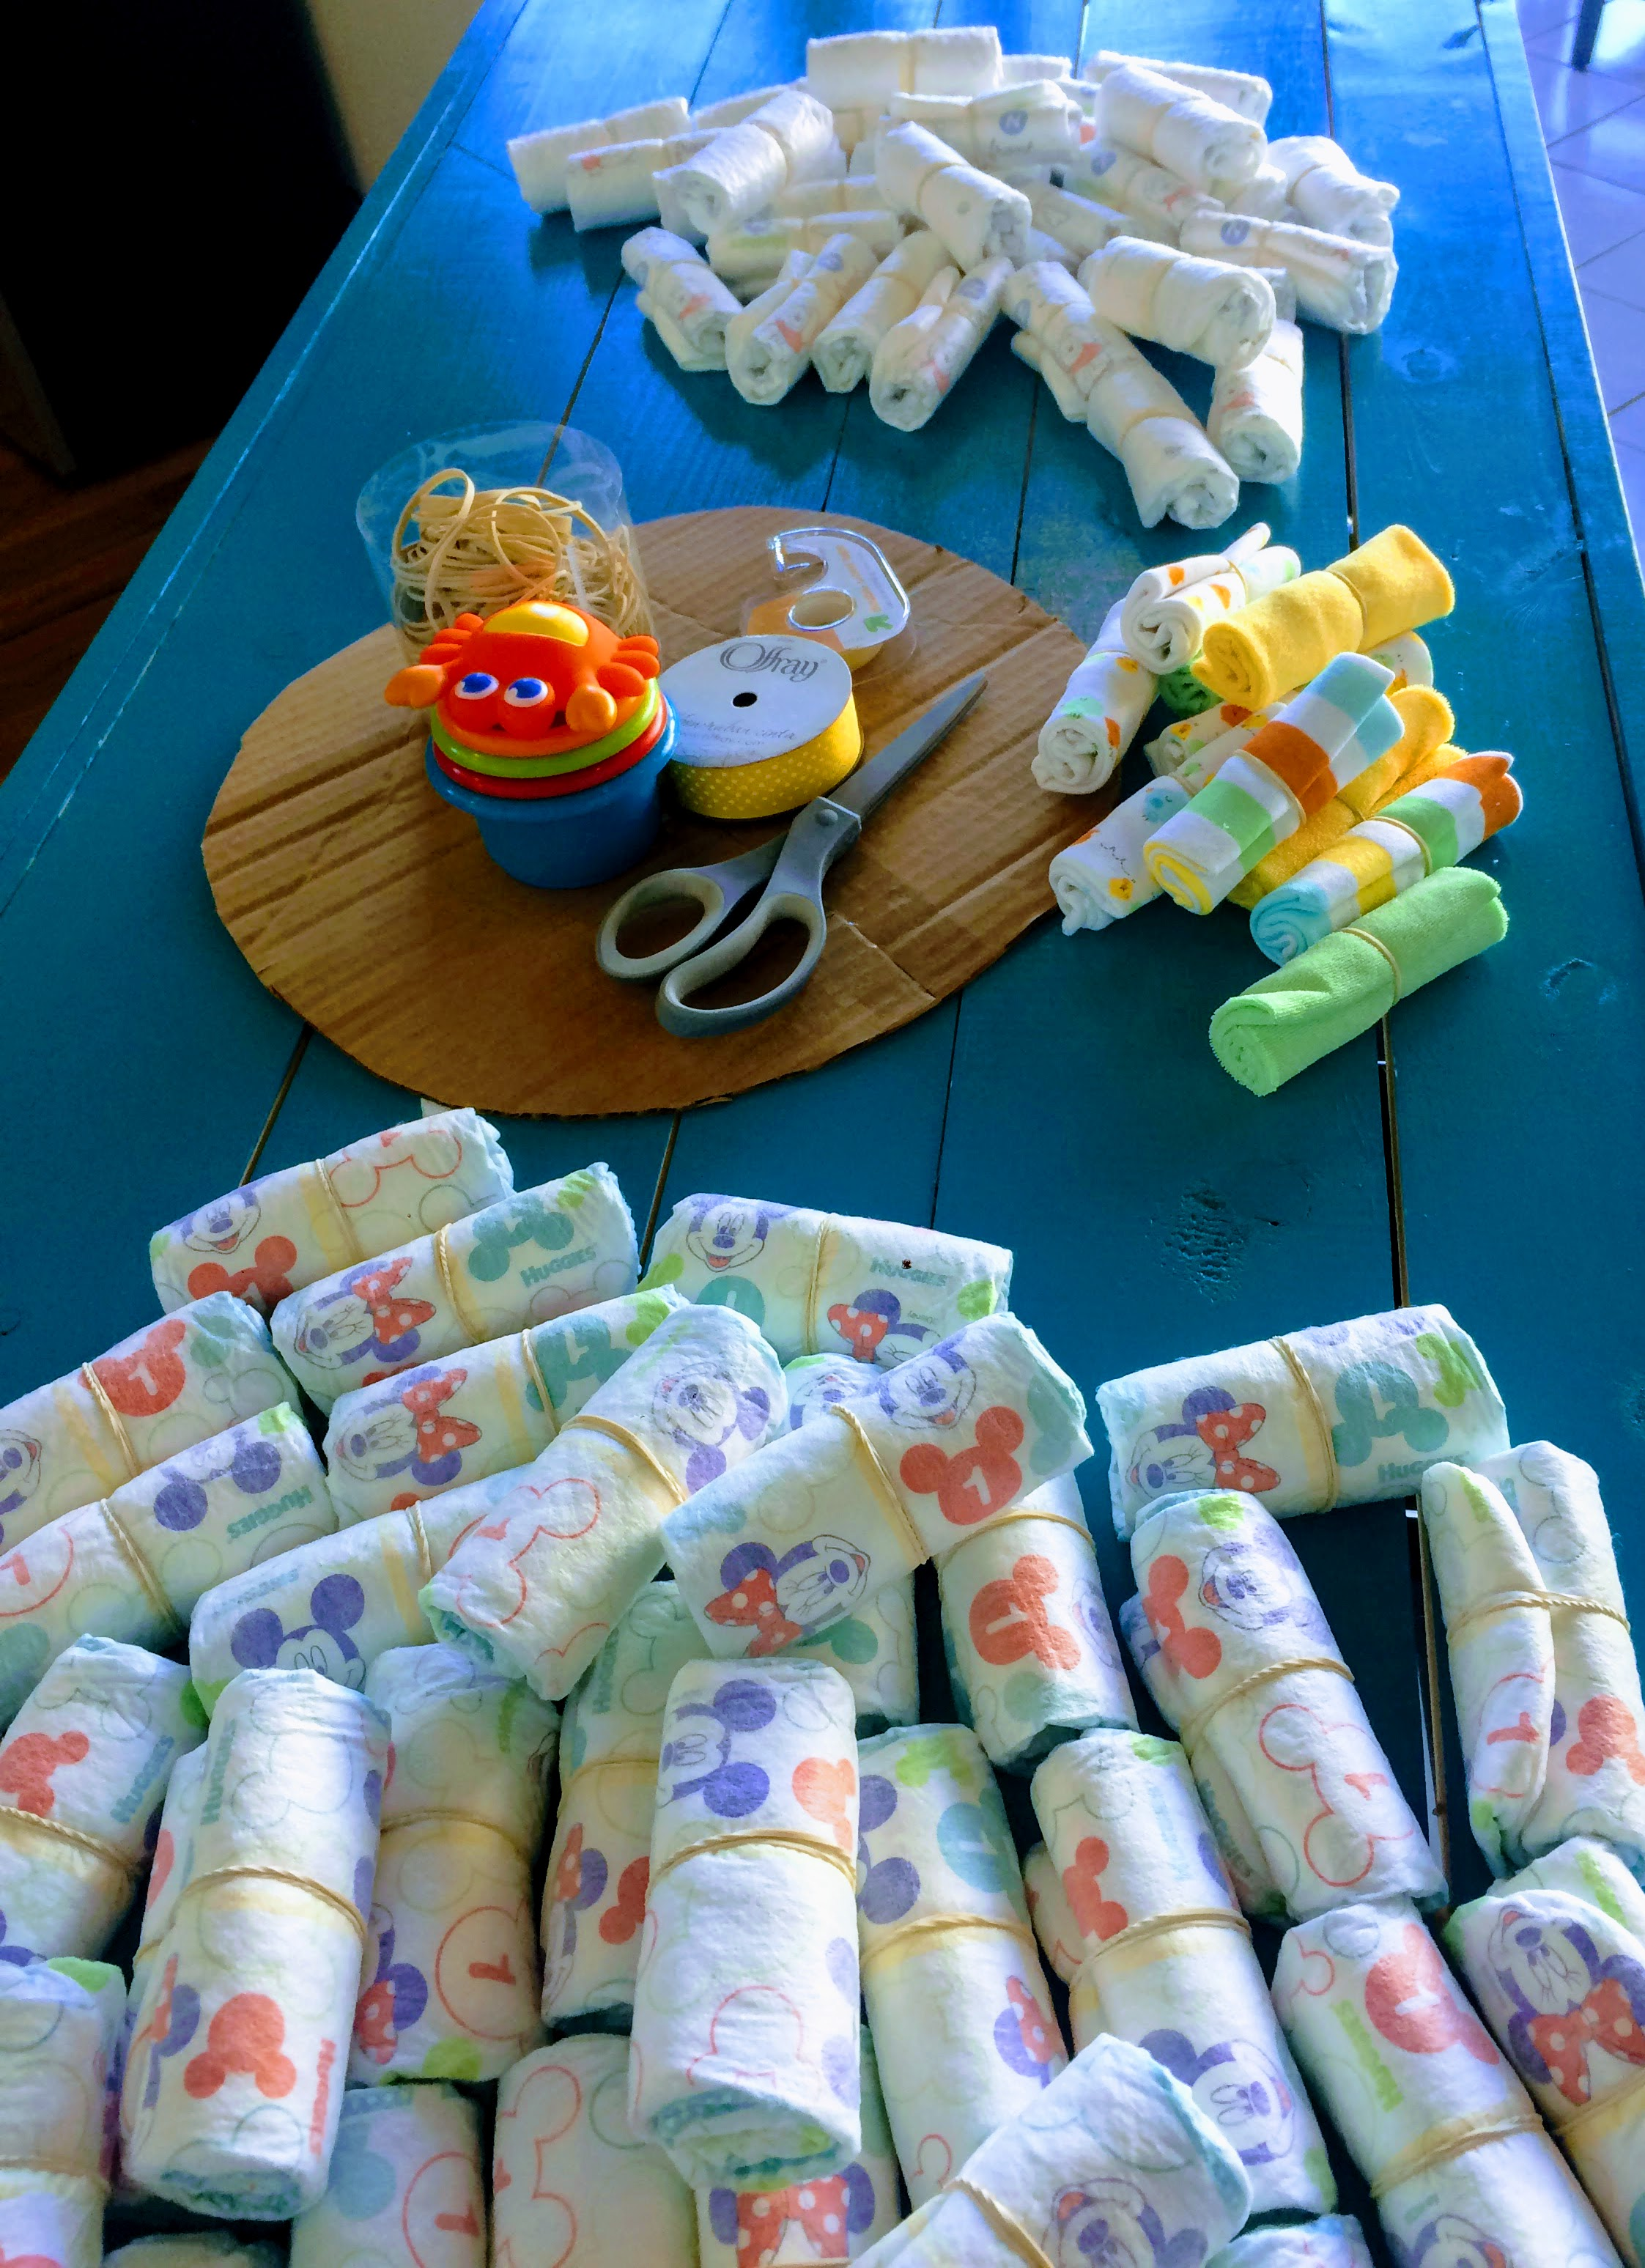 Now you're ready to get started! Roll all of your diapers (and other 'cake' materials) up, starting with the open end of the diaper. Secure each around the middle with a rubber band. It helps if you place the rubber band in close to the same spot on each diaper, so you can easily cover them up with ribbon later. Some diapers have a yellow line down the middle as a wetness indicator, and this can be very useful when attempting to position the band in the same spot.